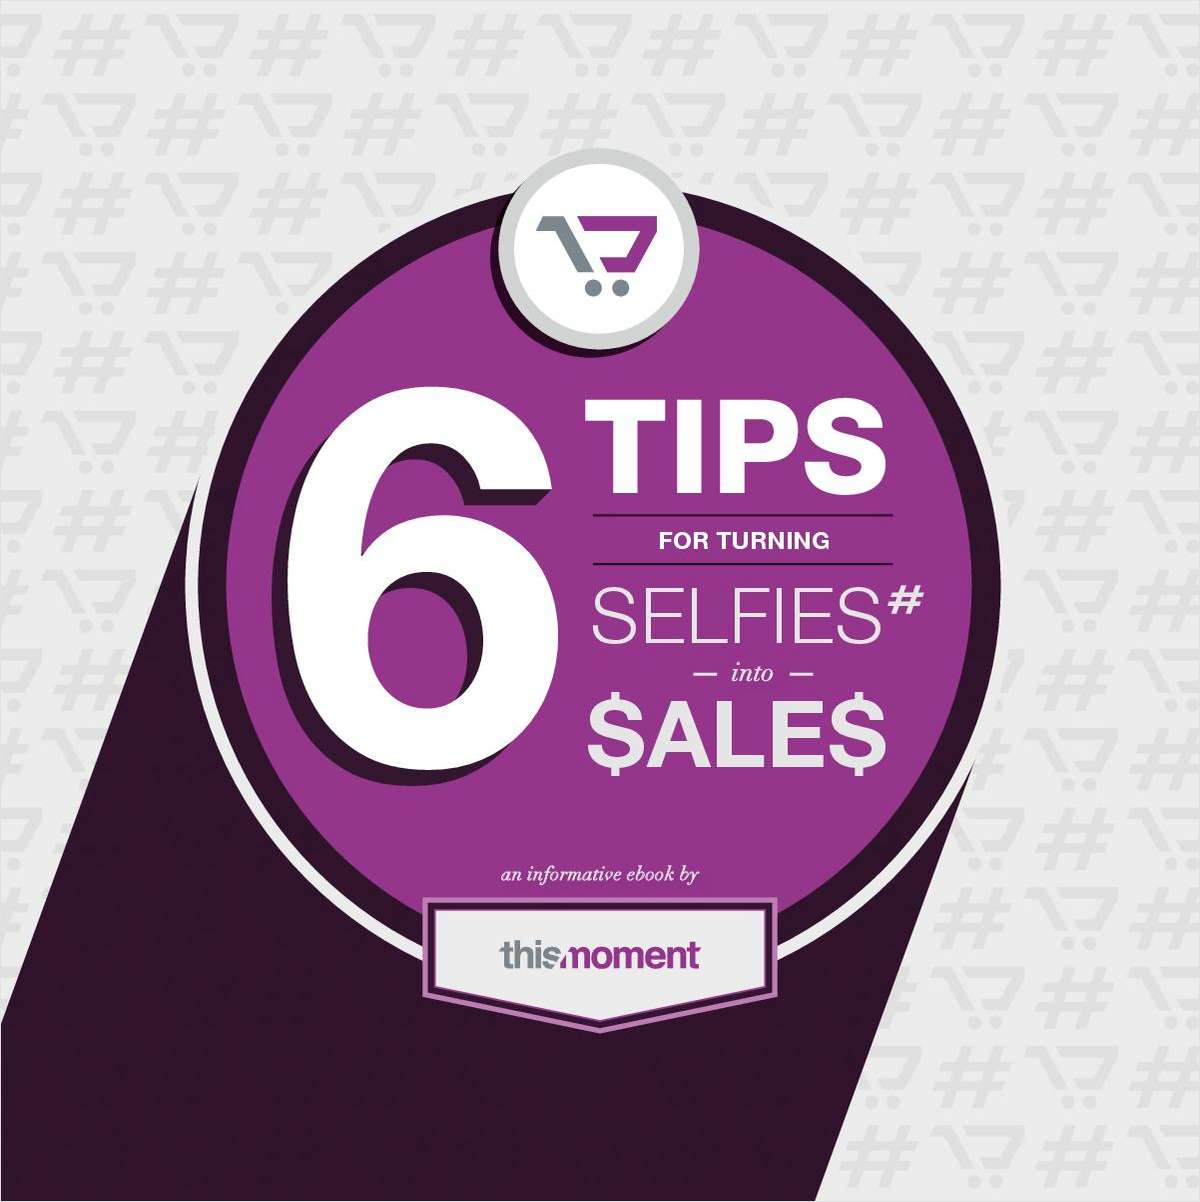 6 Tips for Turning Selfies into Sales